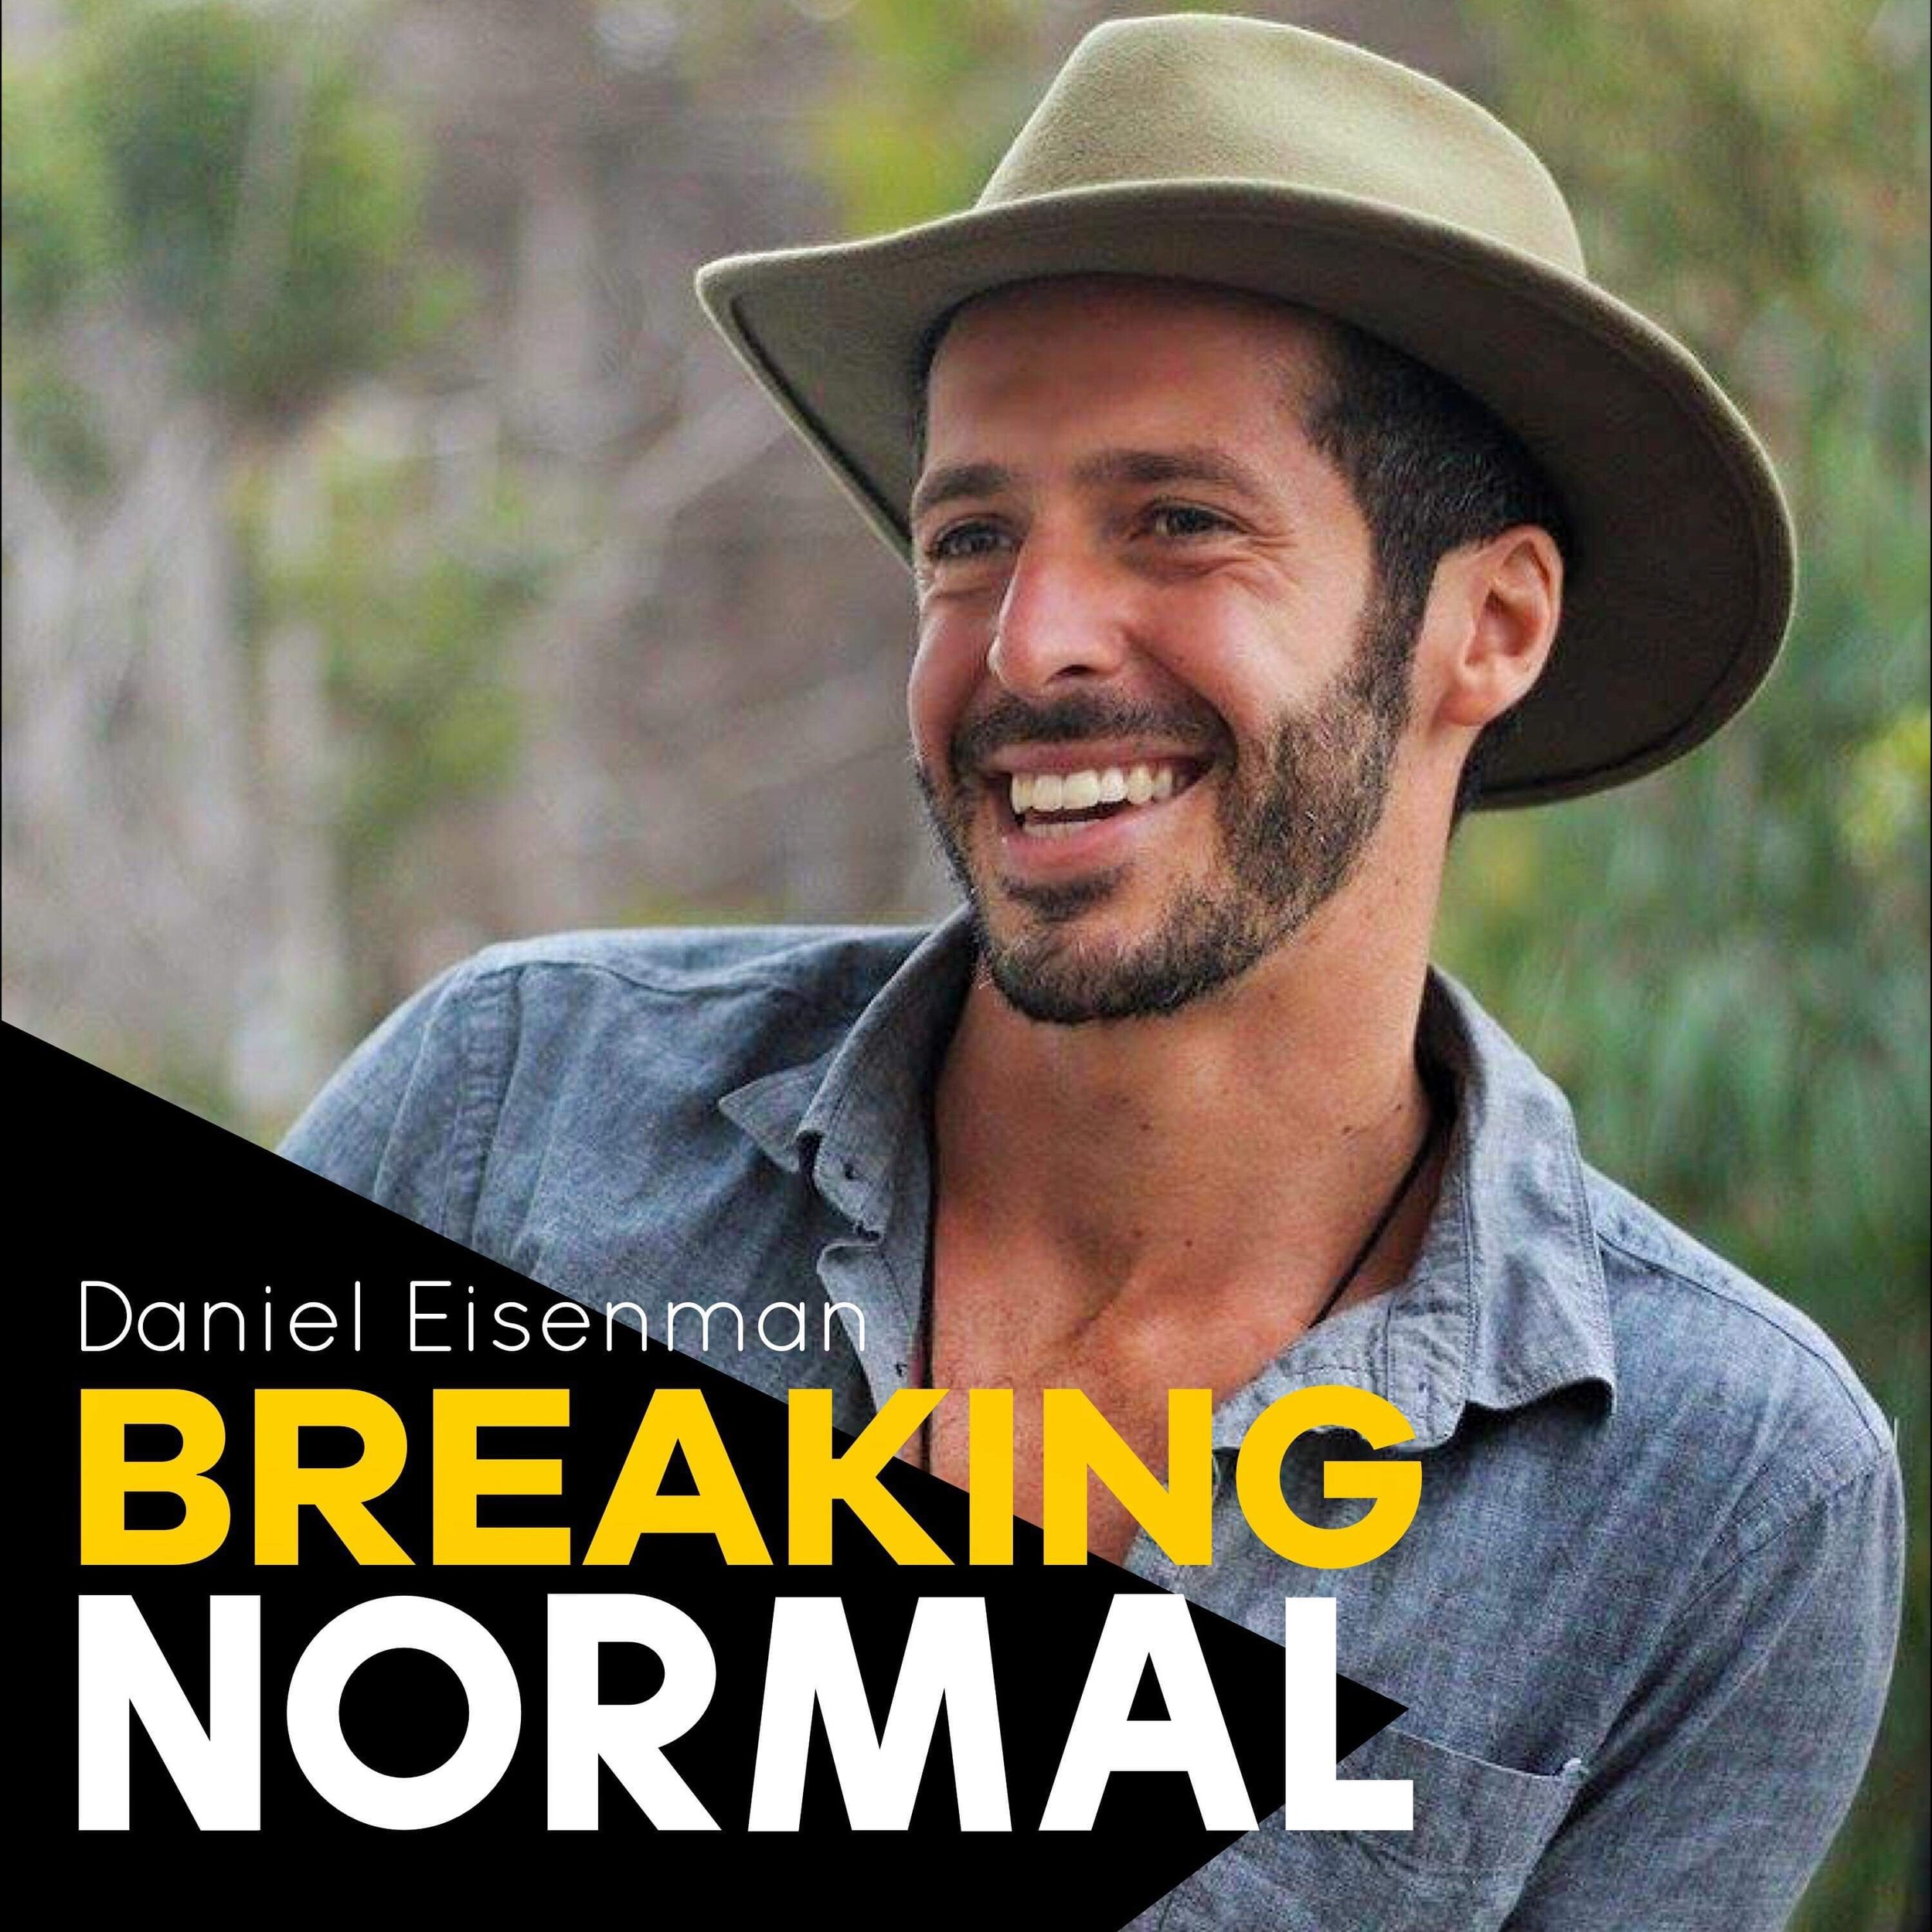 Breaking Normal Podcast - 5/5 stars Apple Podcasts & 200+ ratings and reviewsNEW EPISODES!every SUNDAY & WEDNESDAY stay TUNED IN!